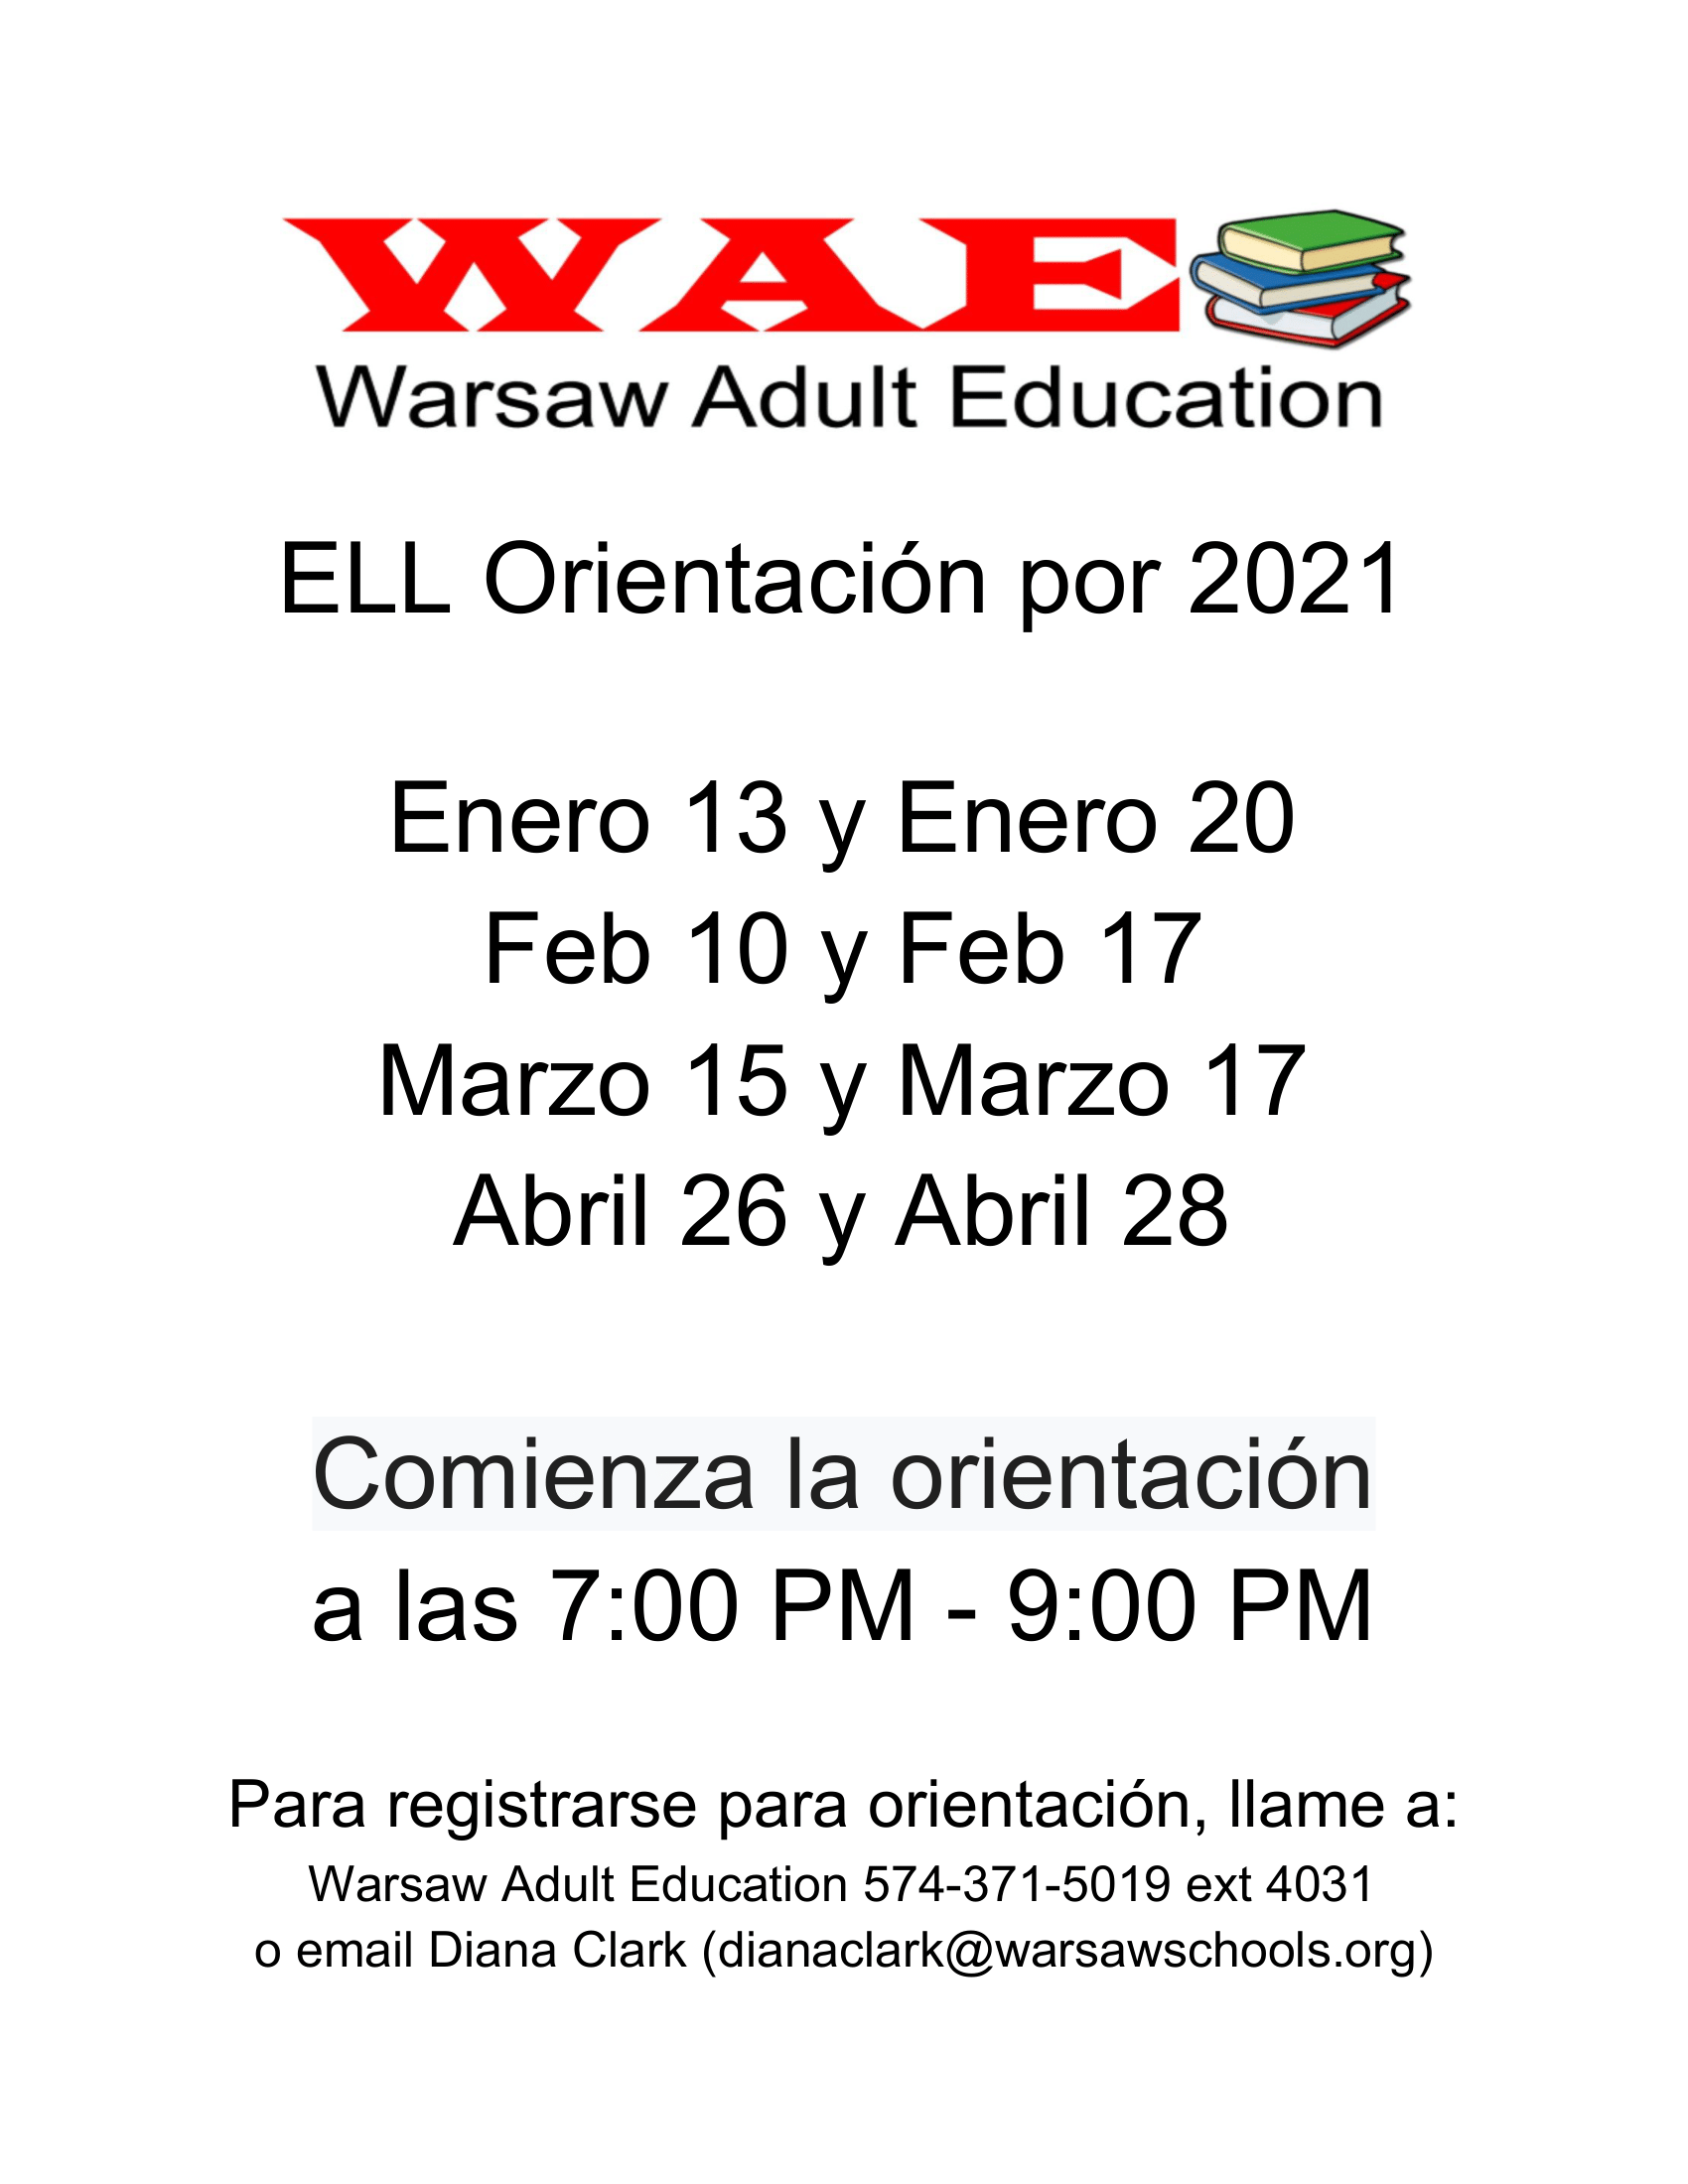 Warsaw Adult Education ELL Orientación 2021